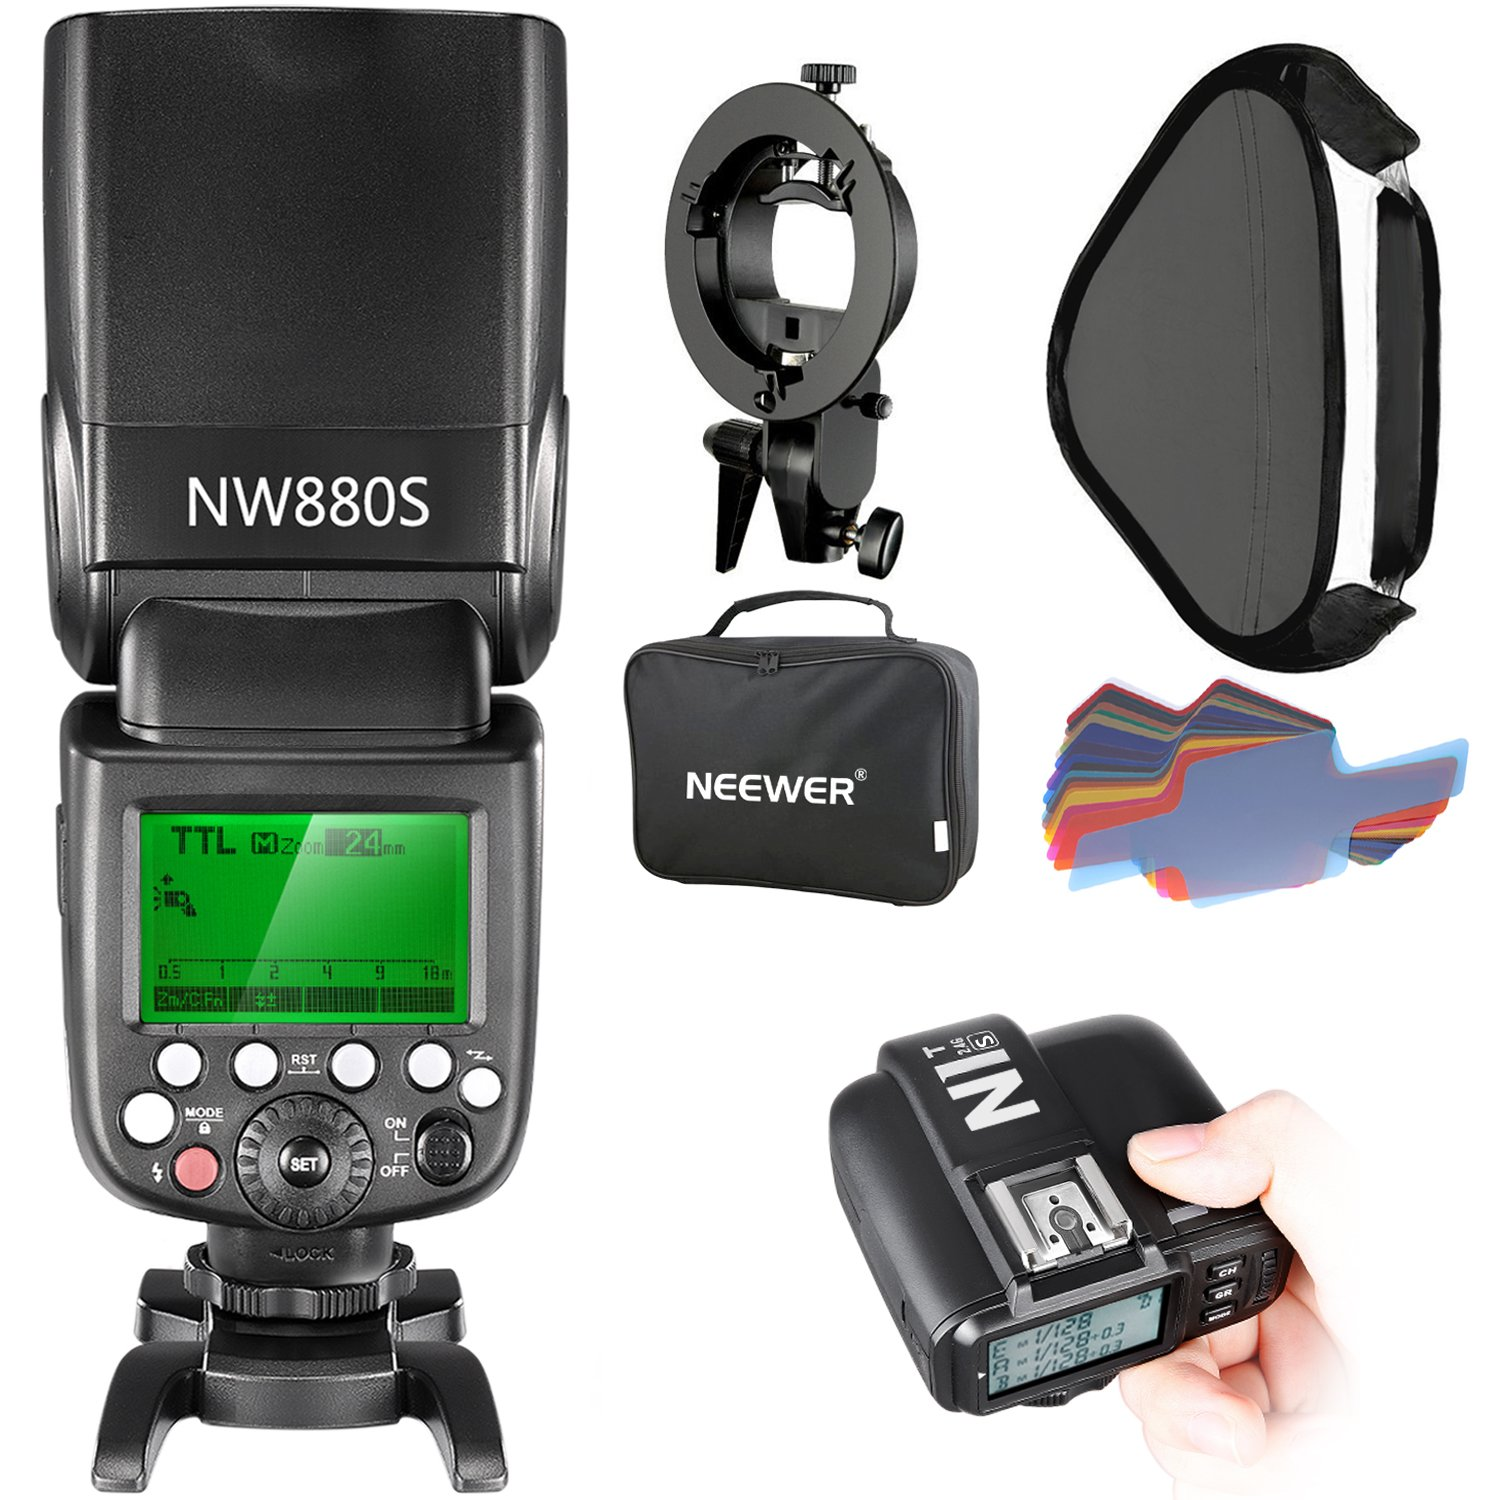 Neewer 2.4G Wireless 1/8000 HSS TTL Master/Slave Flash Speedlite Kit for Sony Camera with New Mi Shoe,Includes:NW880S Flash,N1T-S Trigger,S-Type Bracket,16x16 inches Softbox,20 Pieces Color Filter by Neewer